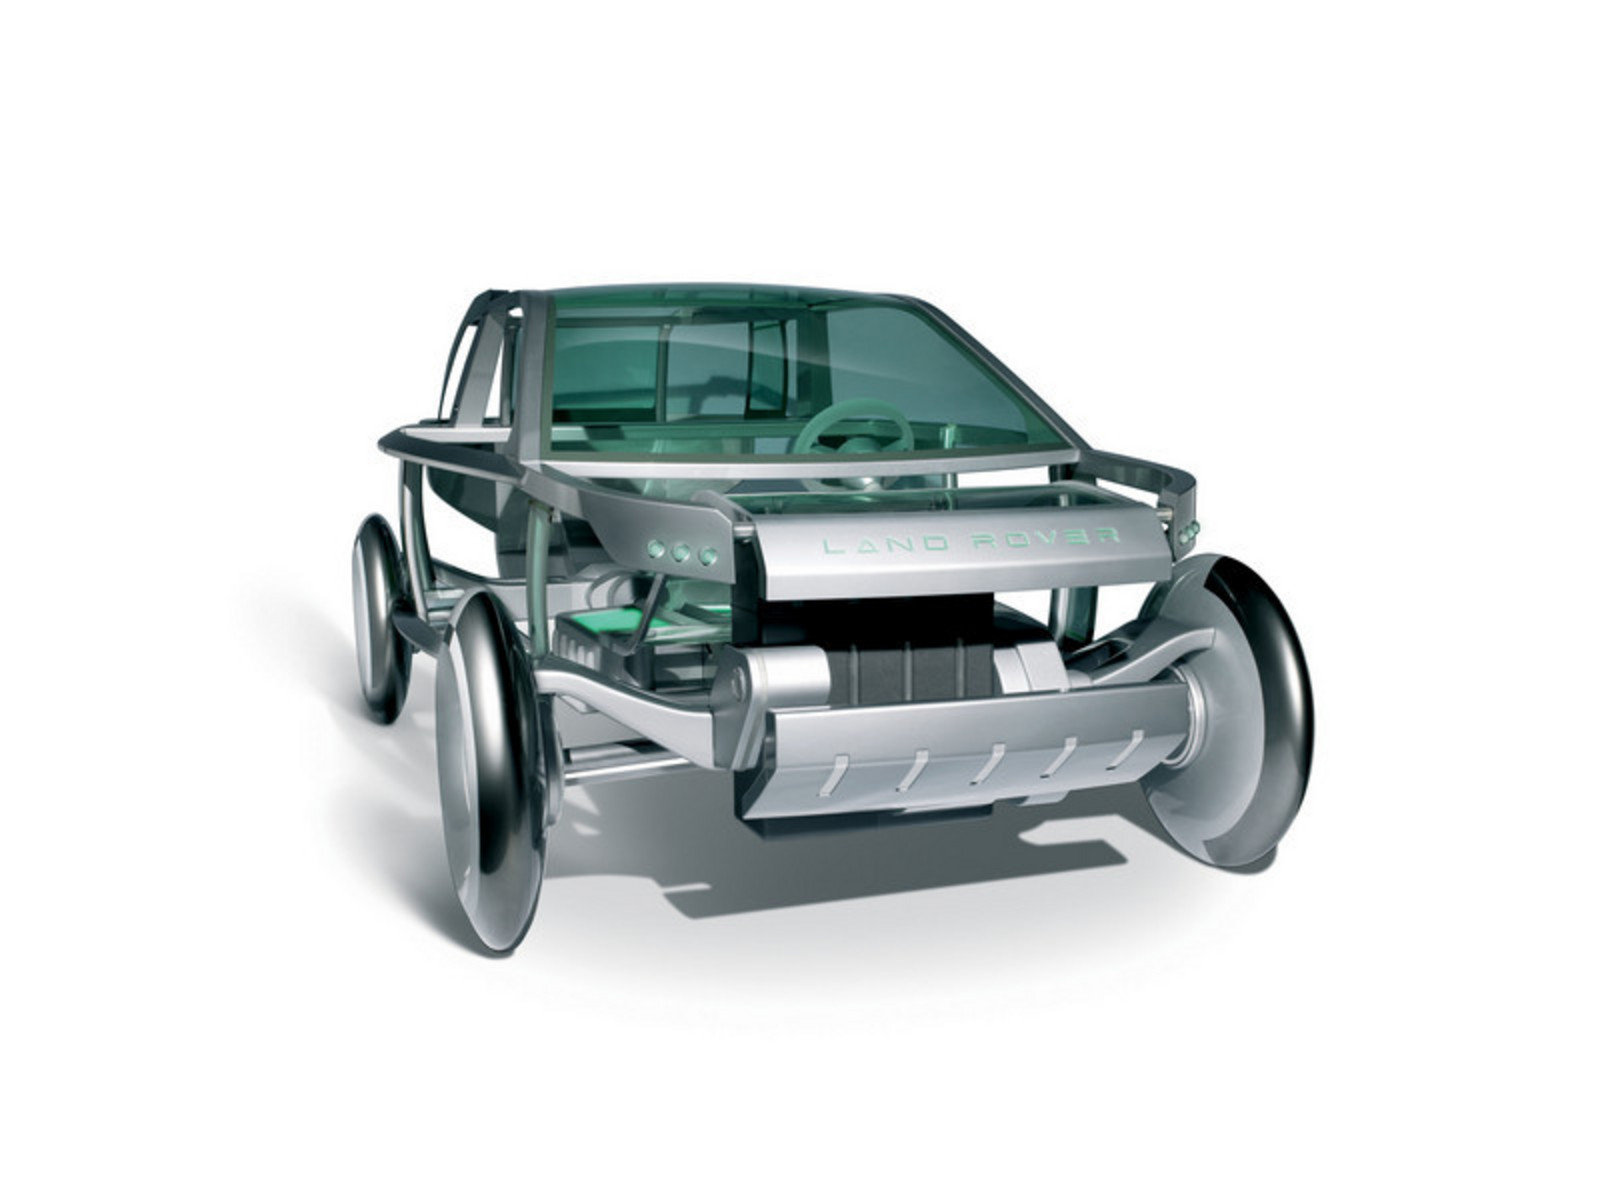 http://pictures.topspeed.com/IMG/crop/200602/2006-land-rover-land_e-co_1600x0w.jpg